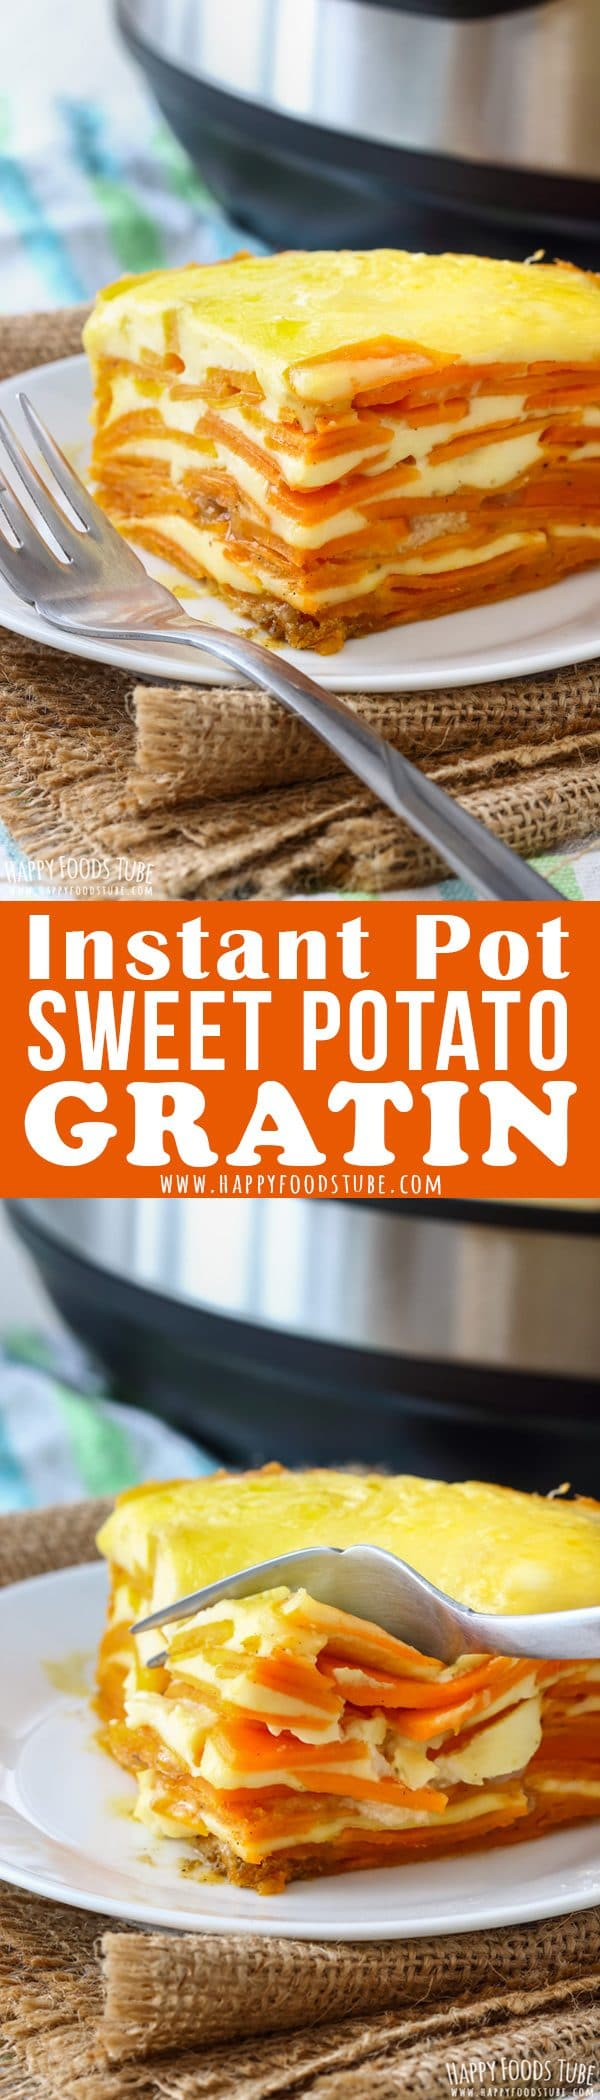 Instant Pot Sweet Potato Gratin Recipe Picture